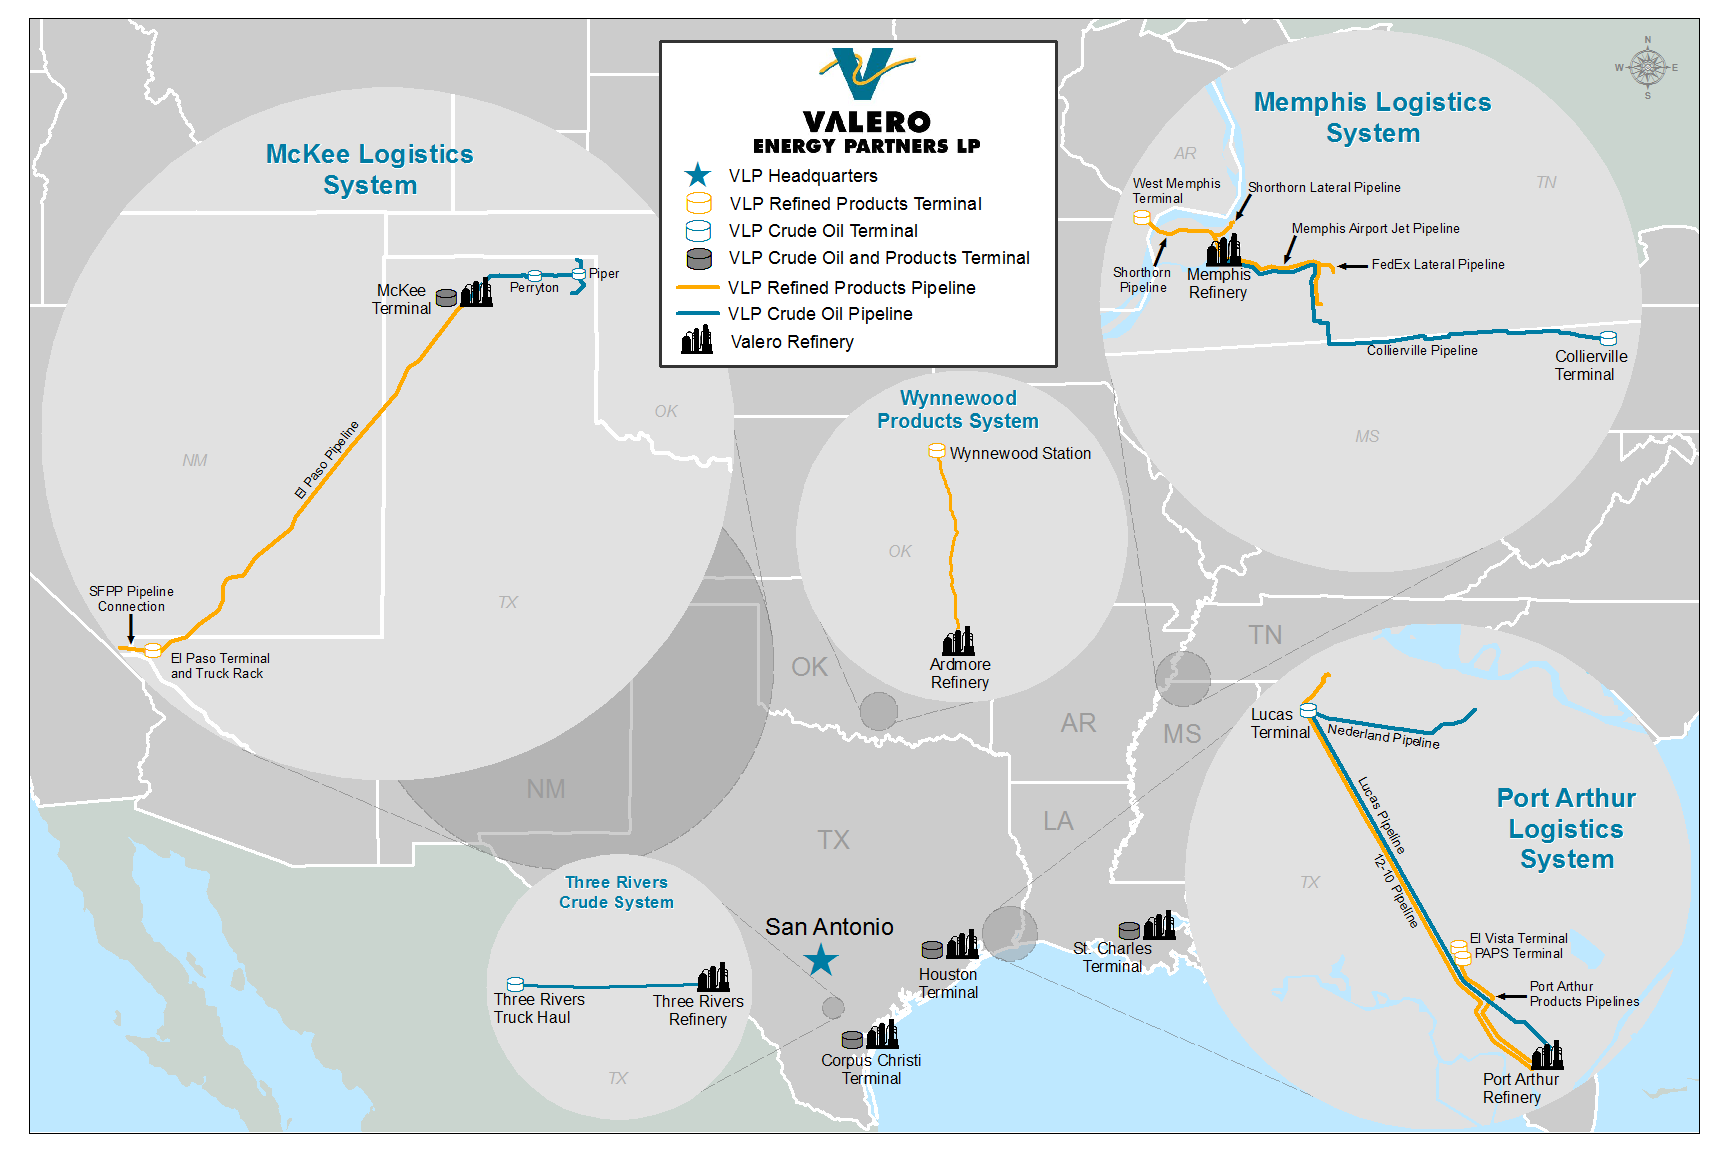 Growth-Oriented Logistics MLP with Diversified Portfolio, Integrated with VLO s Refining Assets IPO assets Drop downs 4 McKee Terminal April 1, 2016 - $240 mm (1) 1 Texas Crude Systems McKee, Three